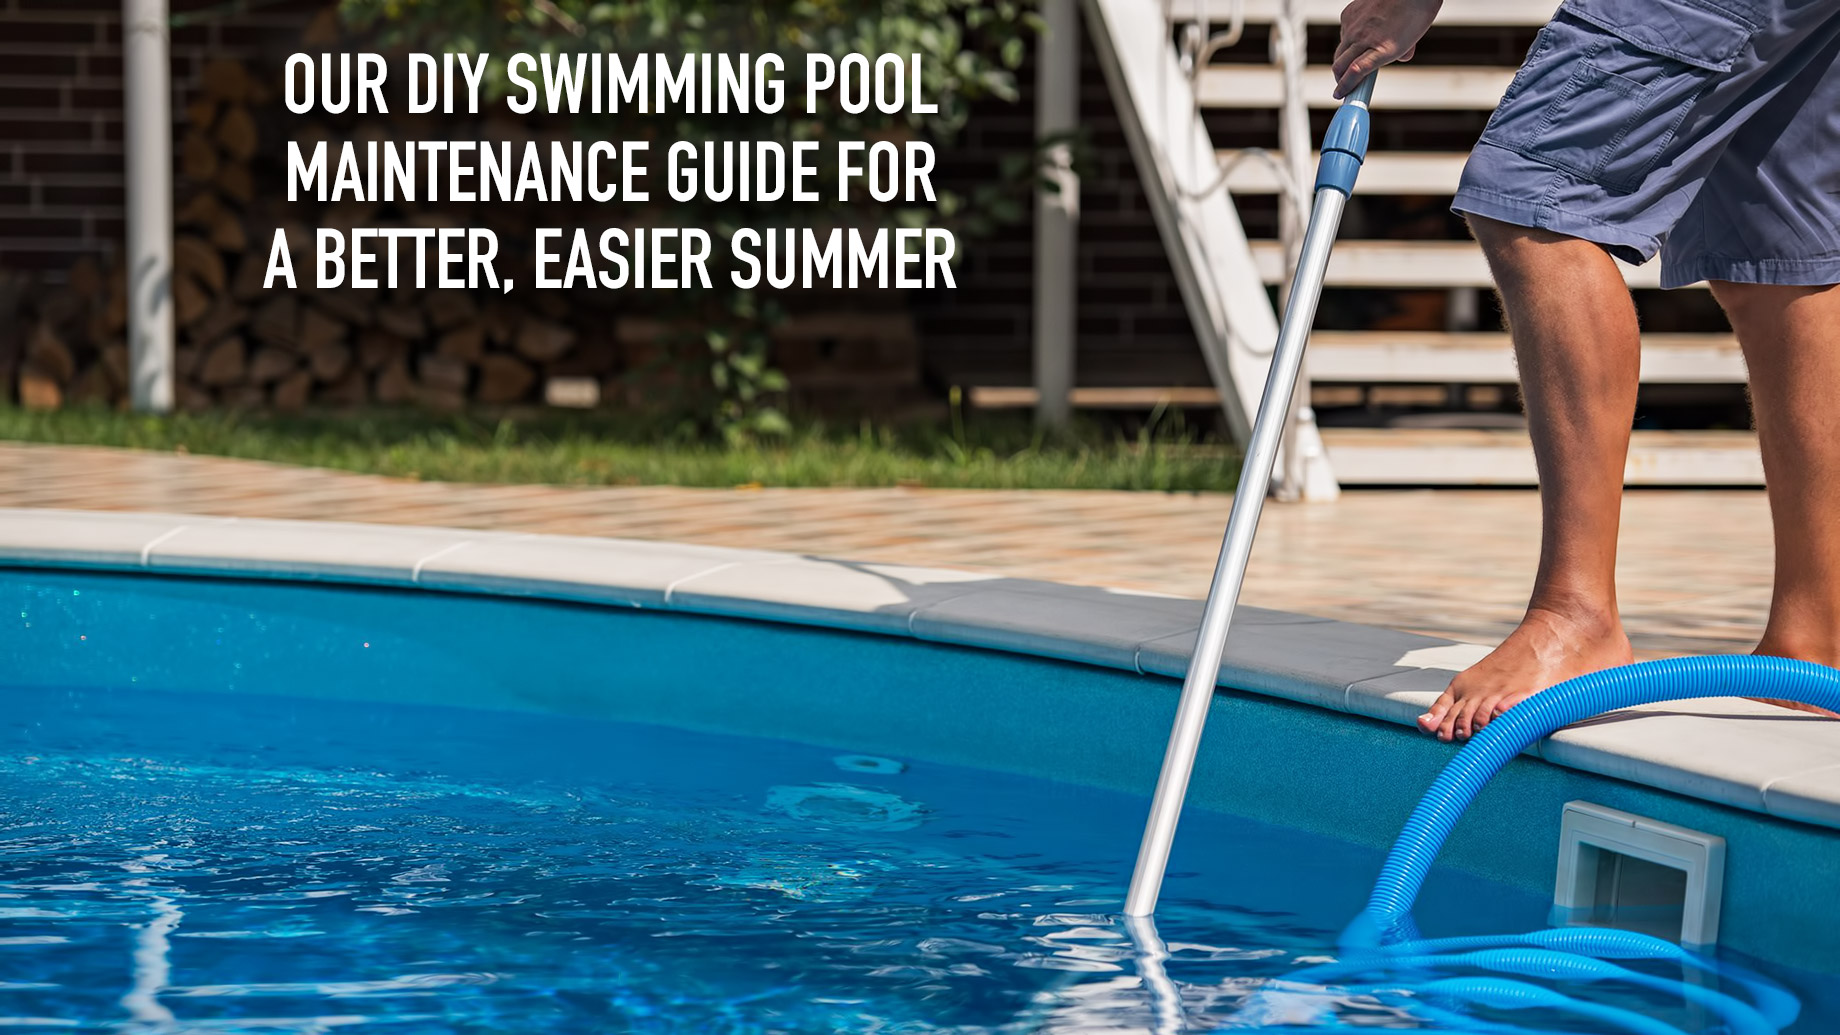 Our DIY Swimming Pool Maintenance Guide for a Better, Easier Summer